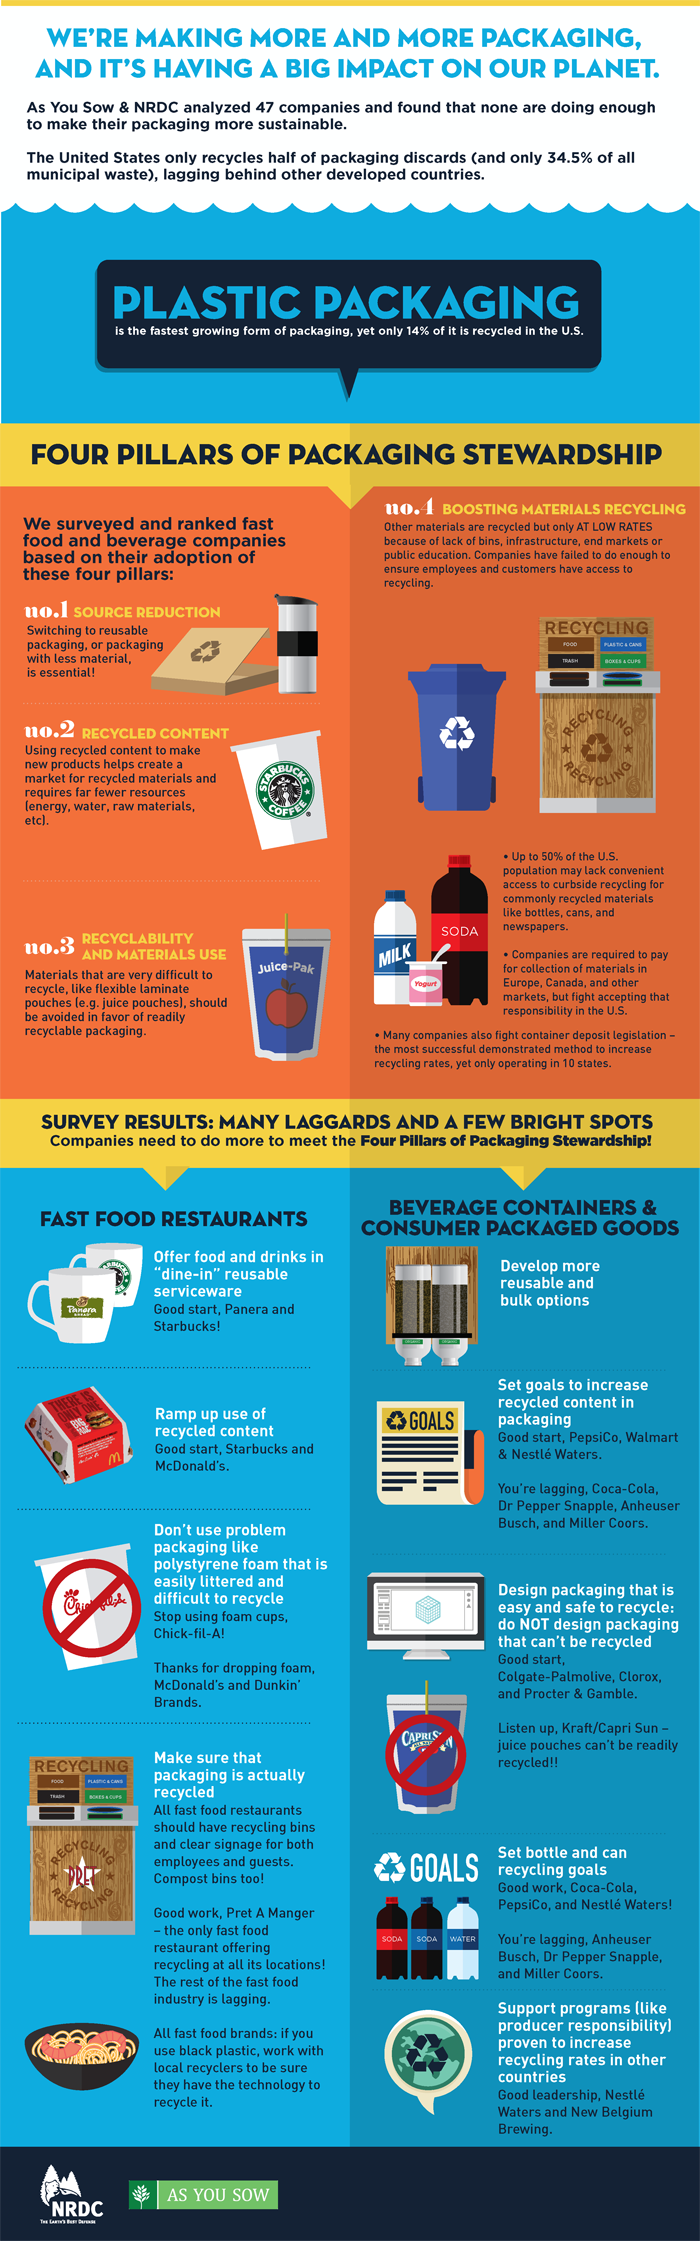 Waste and Opportunity 2015 - Infographic - 700x2241